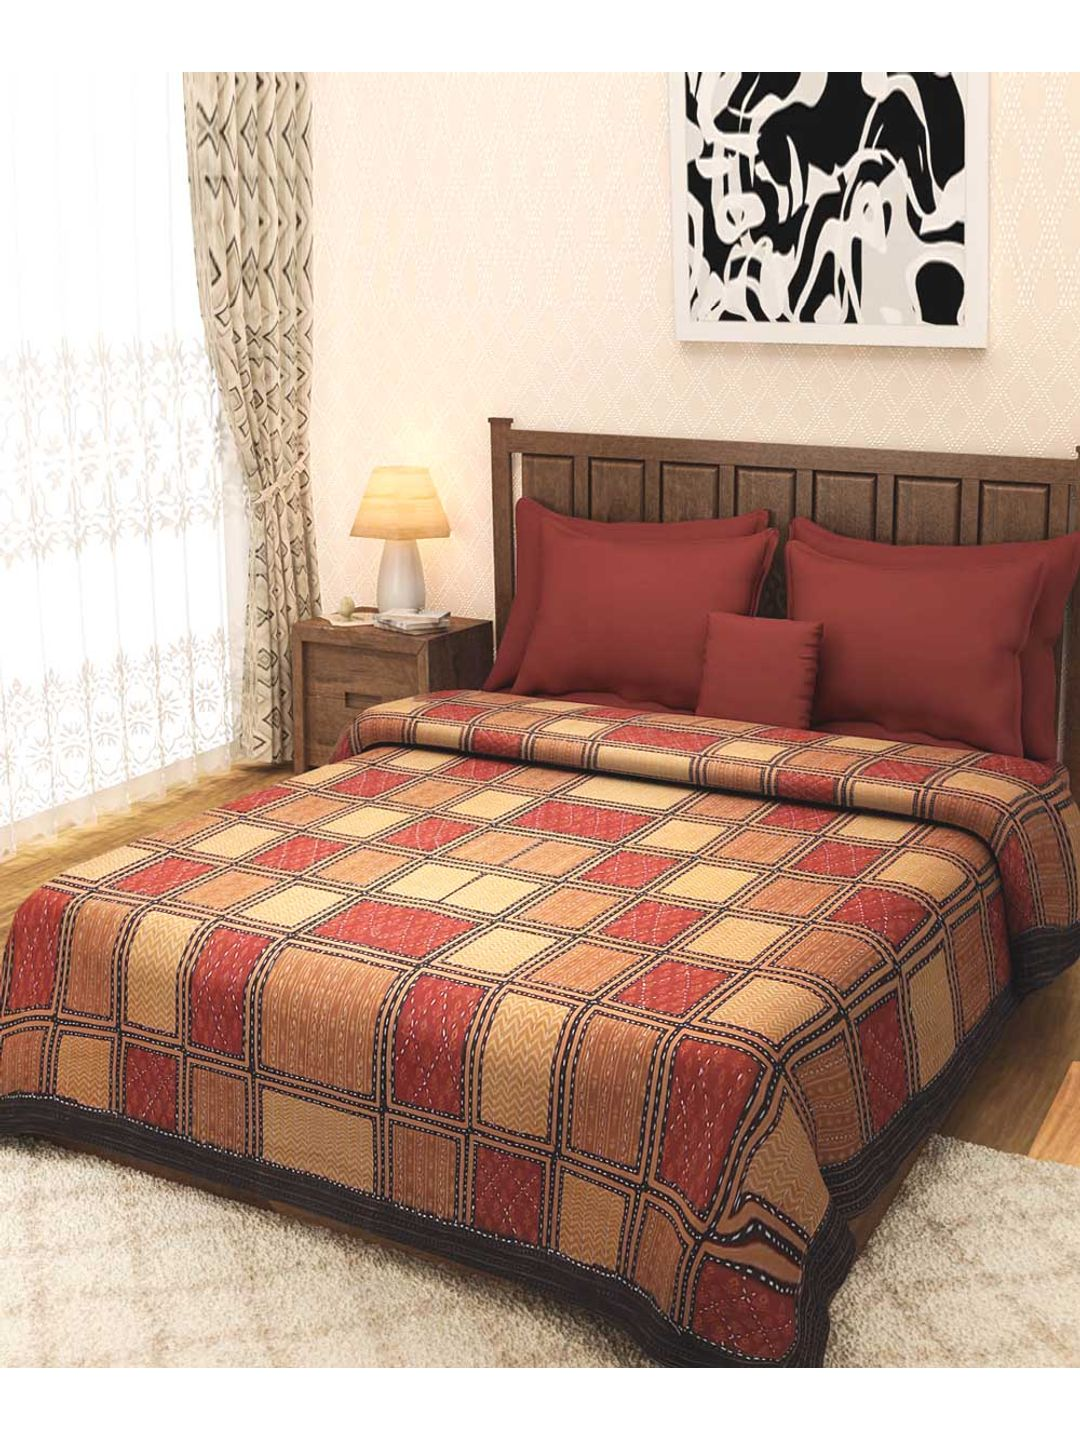 Earthen Brown Kantha Rajasthani Bed Cover